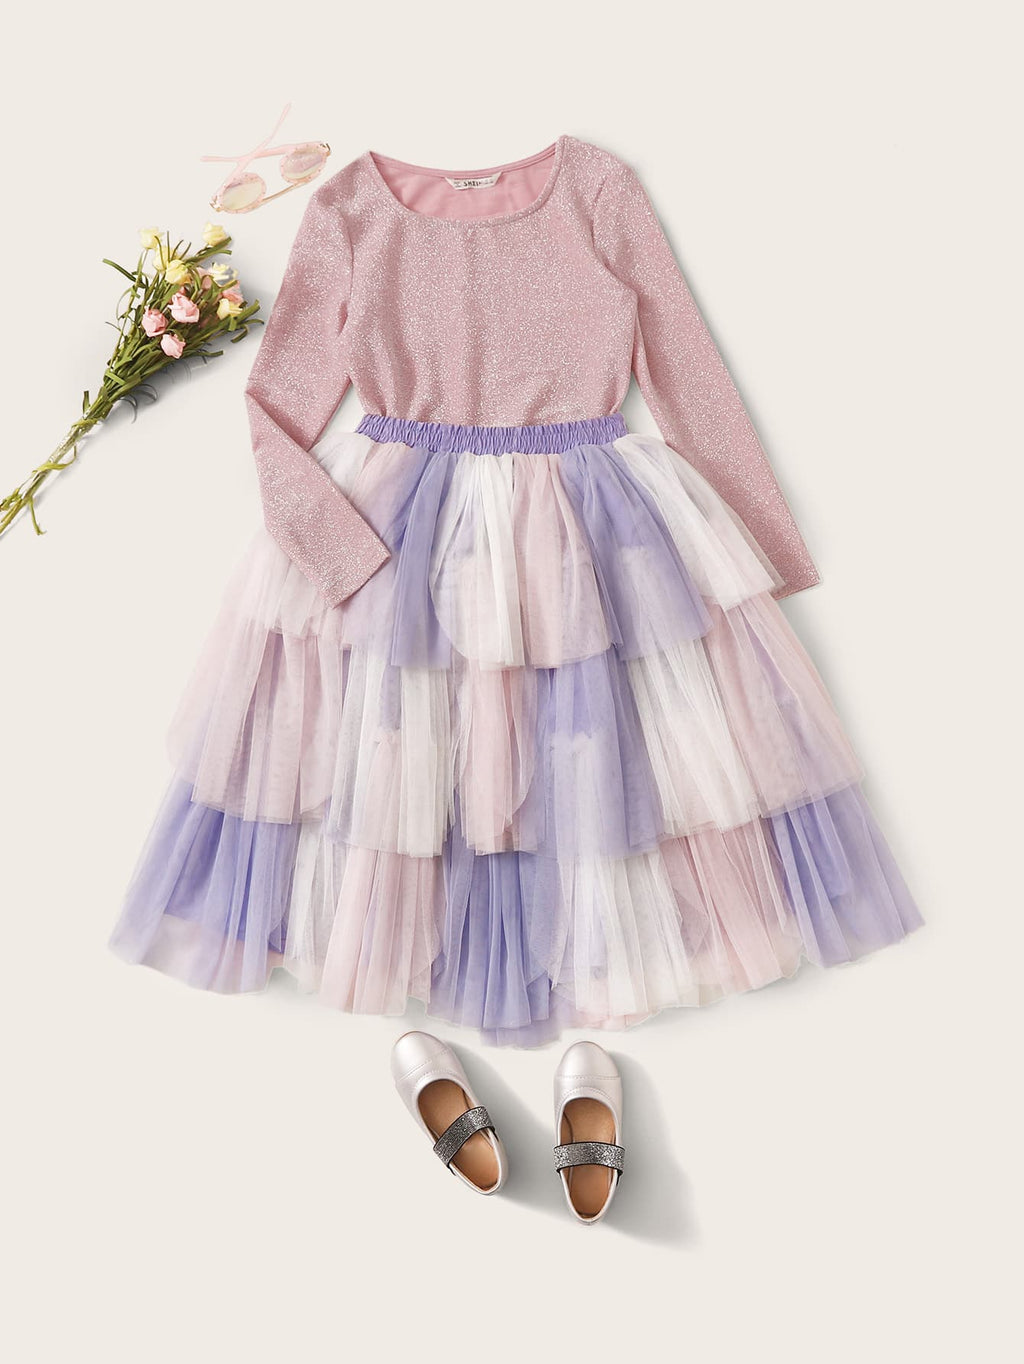 Girls Glitter Top and Layered Mesh Colorblock Skirt Set